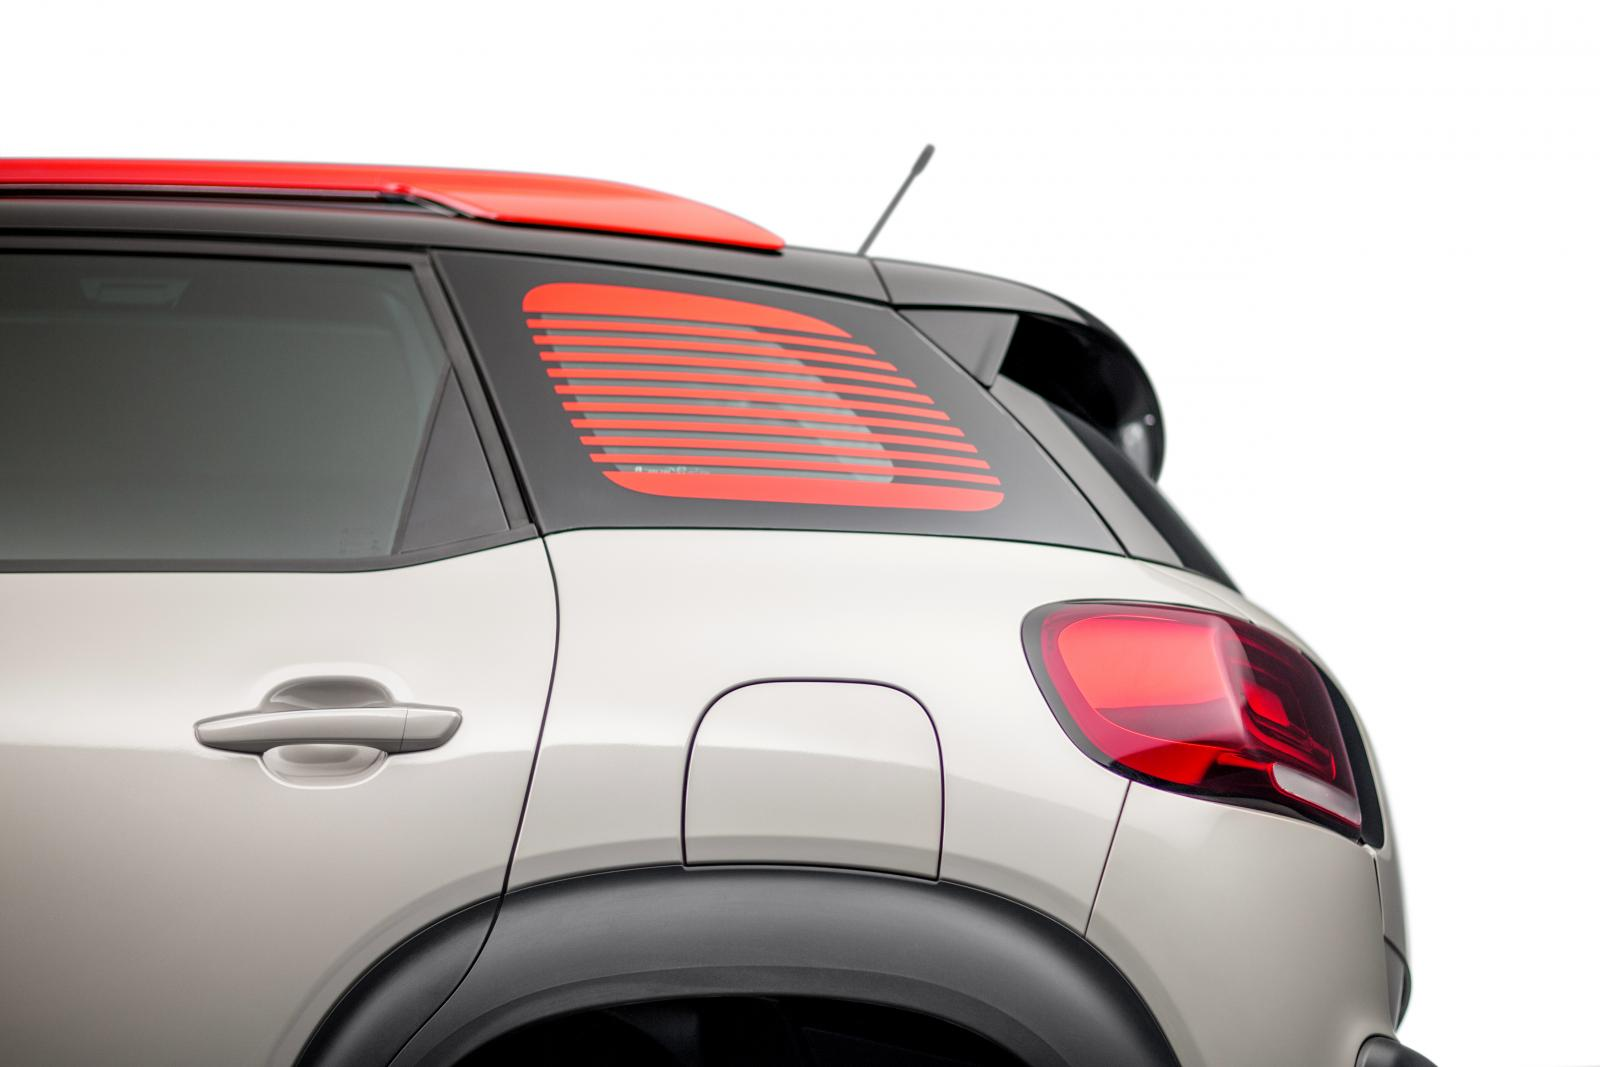 C3 Aircross Compact SUV - Rear view